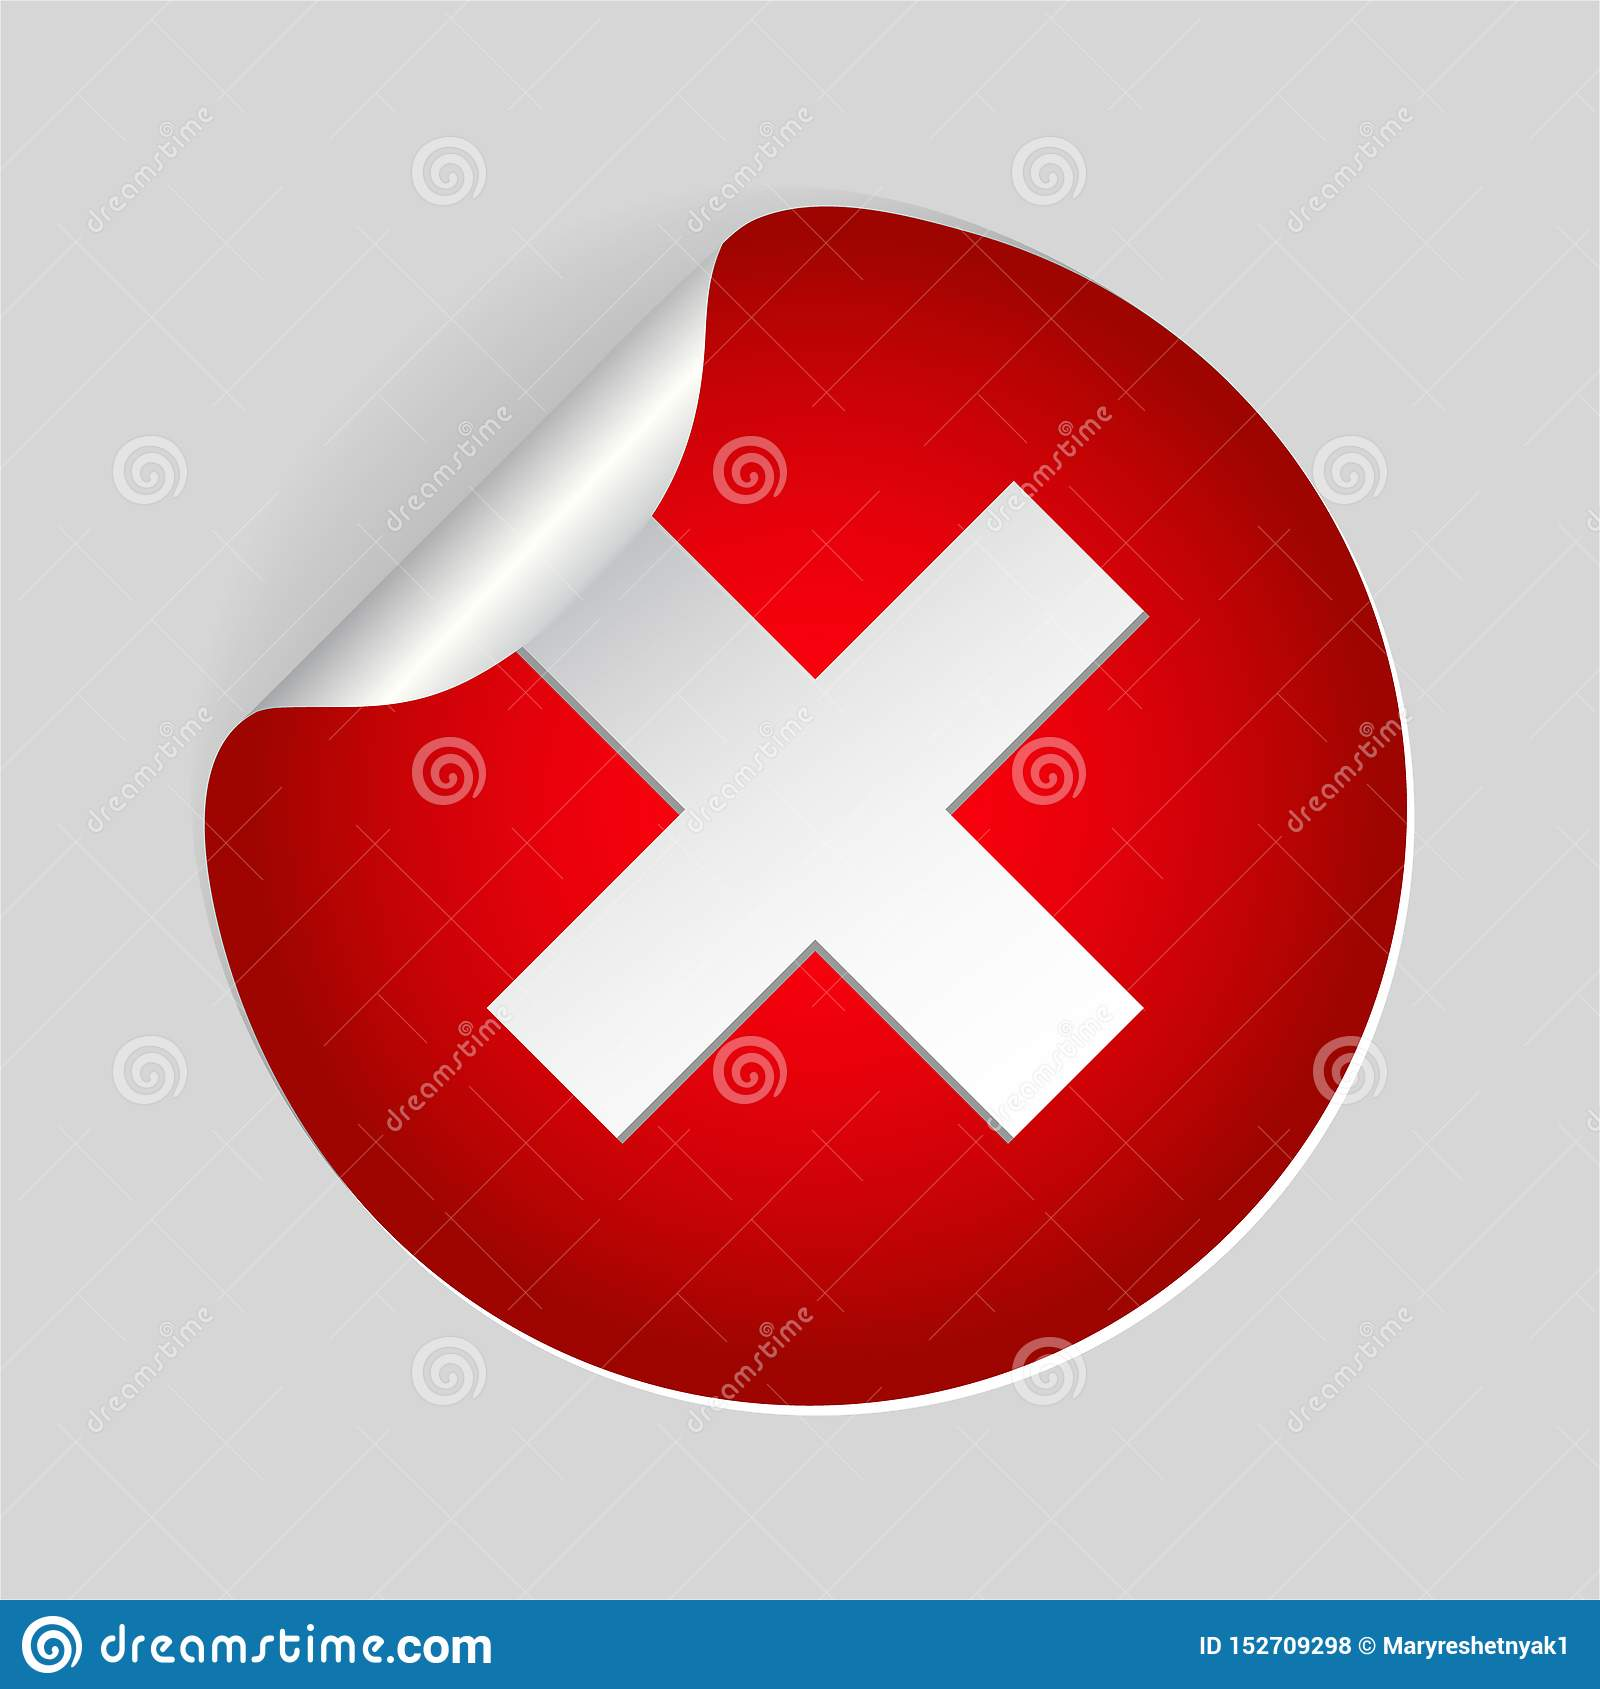 Red x cross mark icon. Cancel flat symbol in circle for website. vector eps10